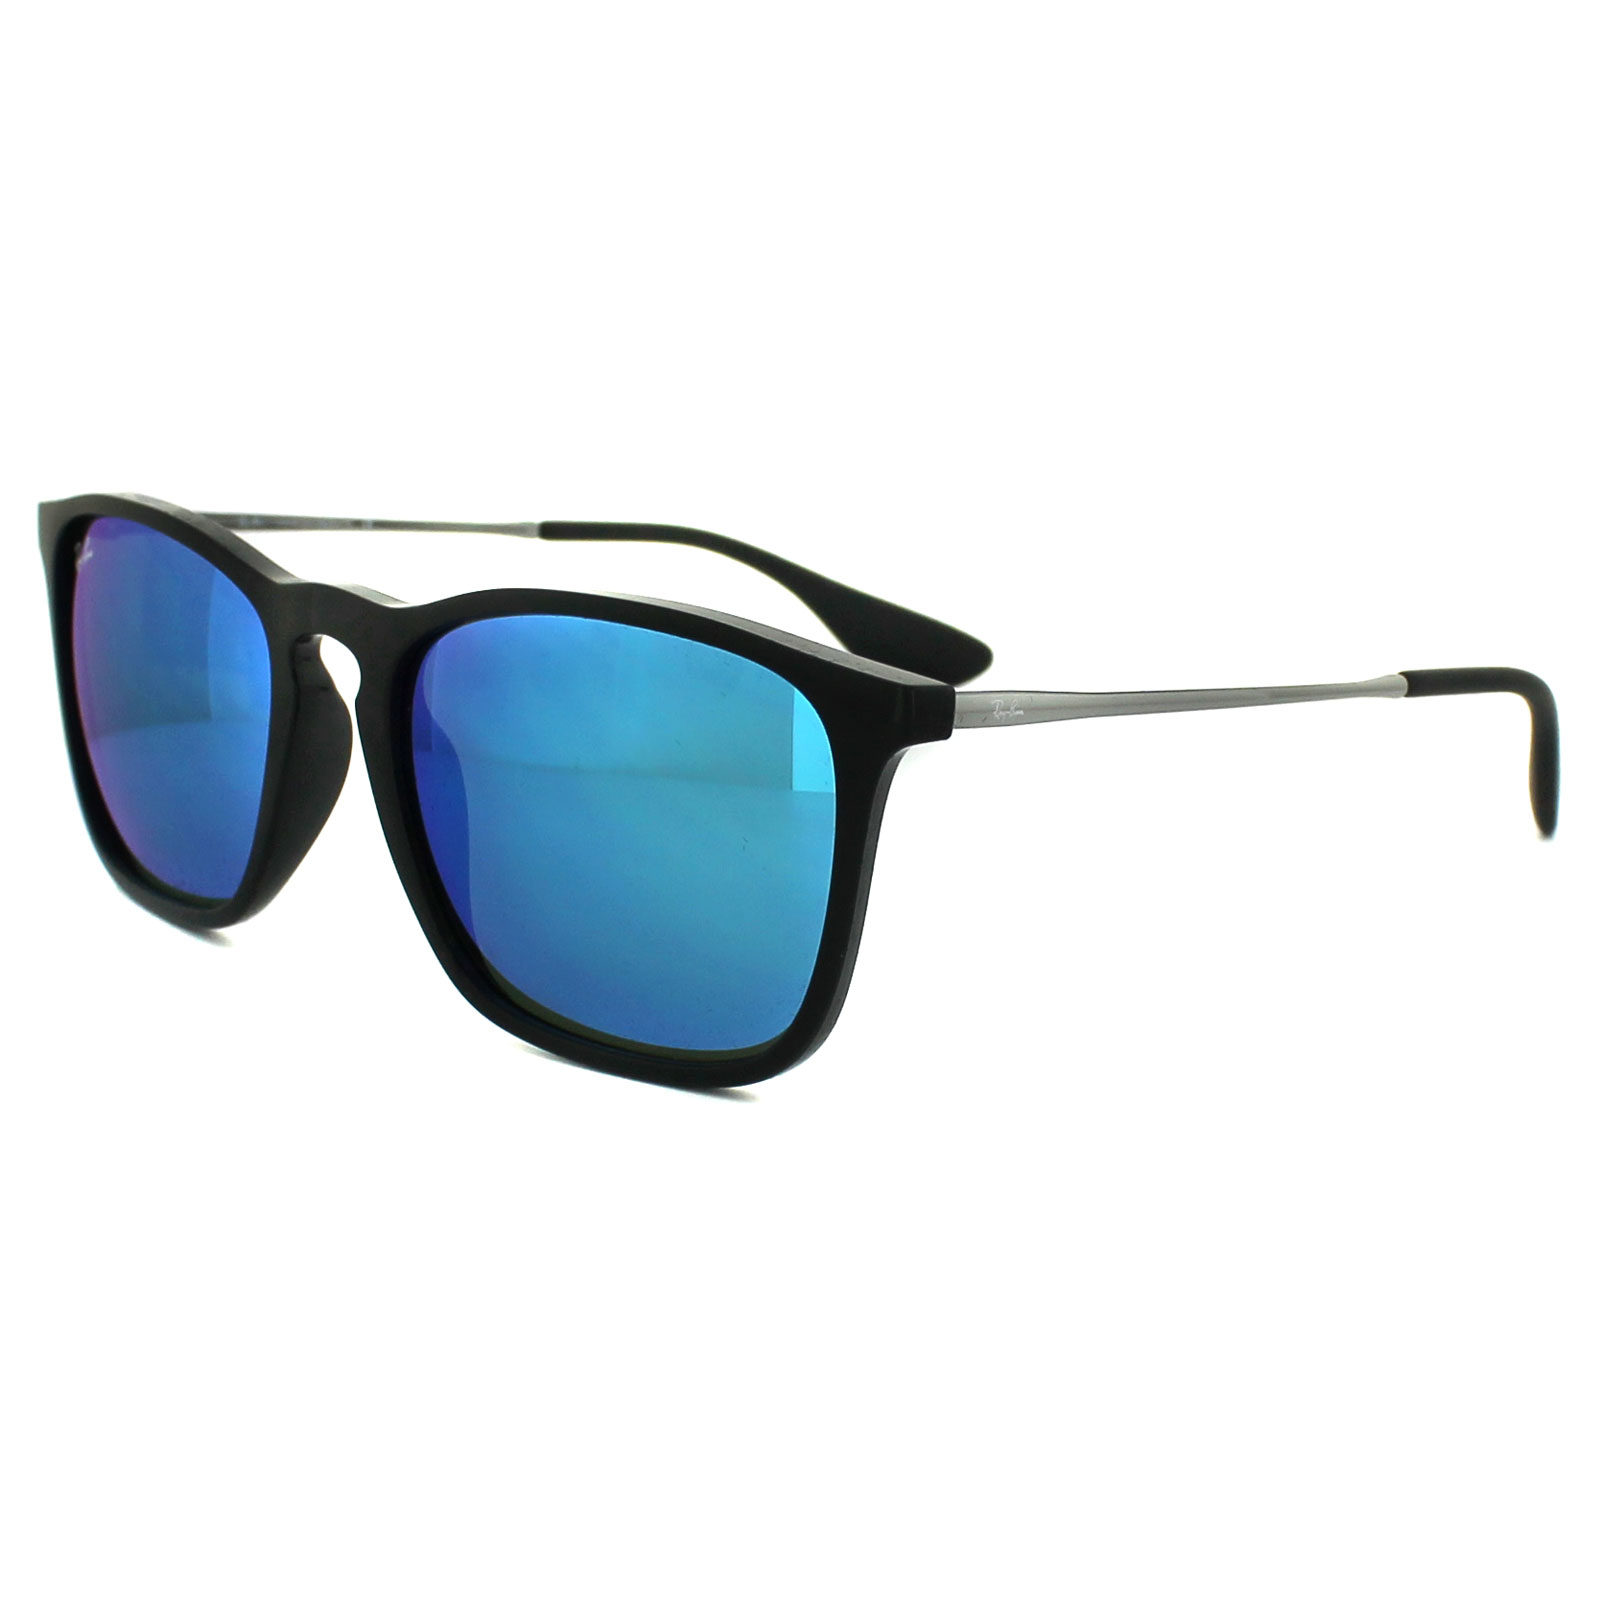 ceb76be14a Details about Ray-Ban Sunglasses Chris 4187 601 55 Black   Gunmetal Blue  Mirror